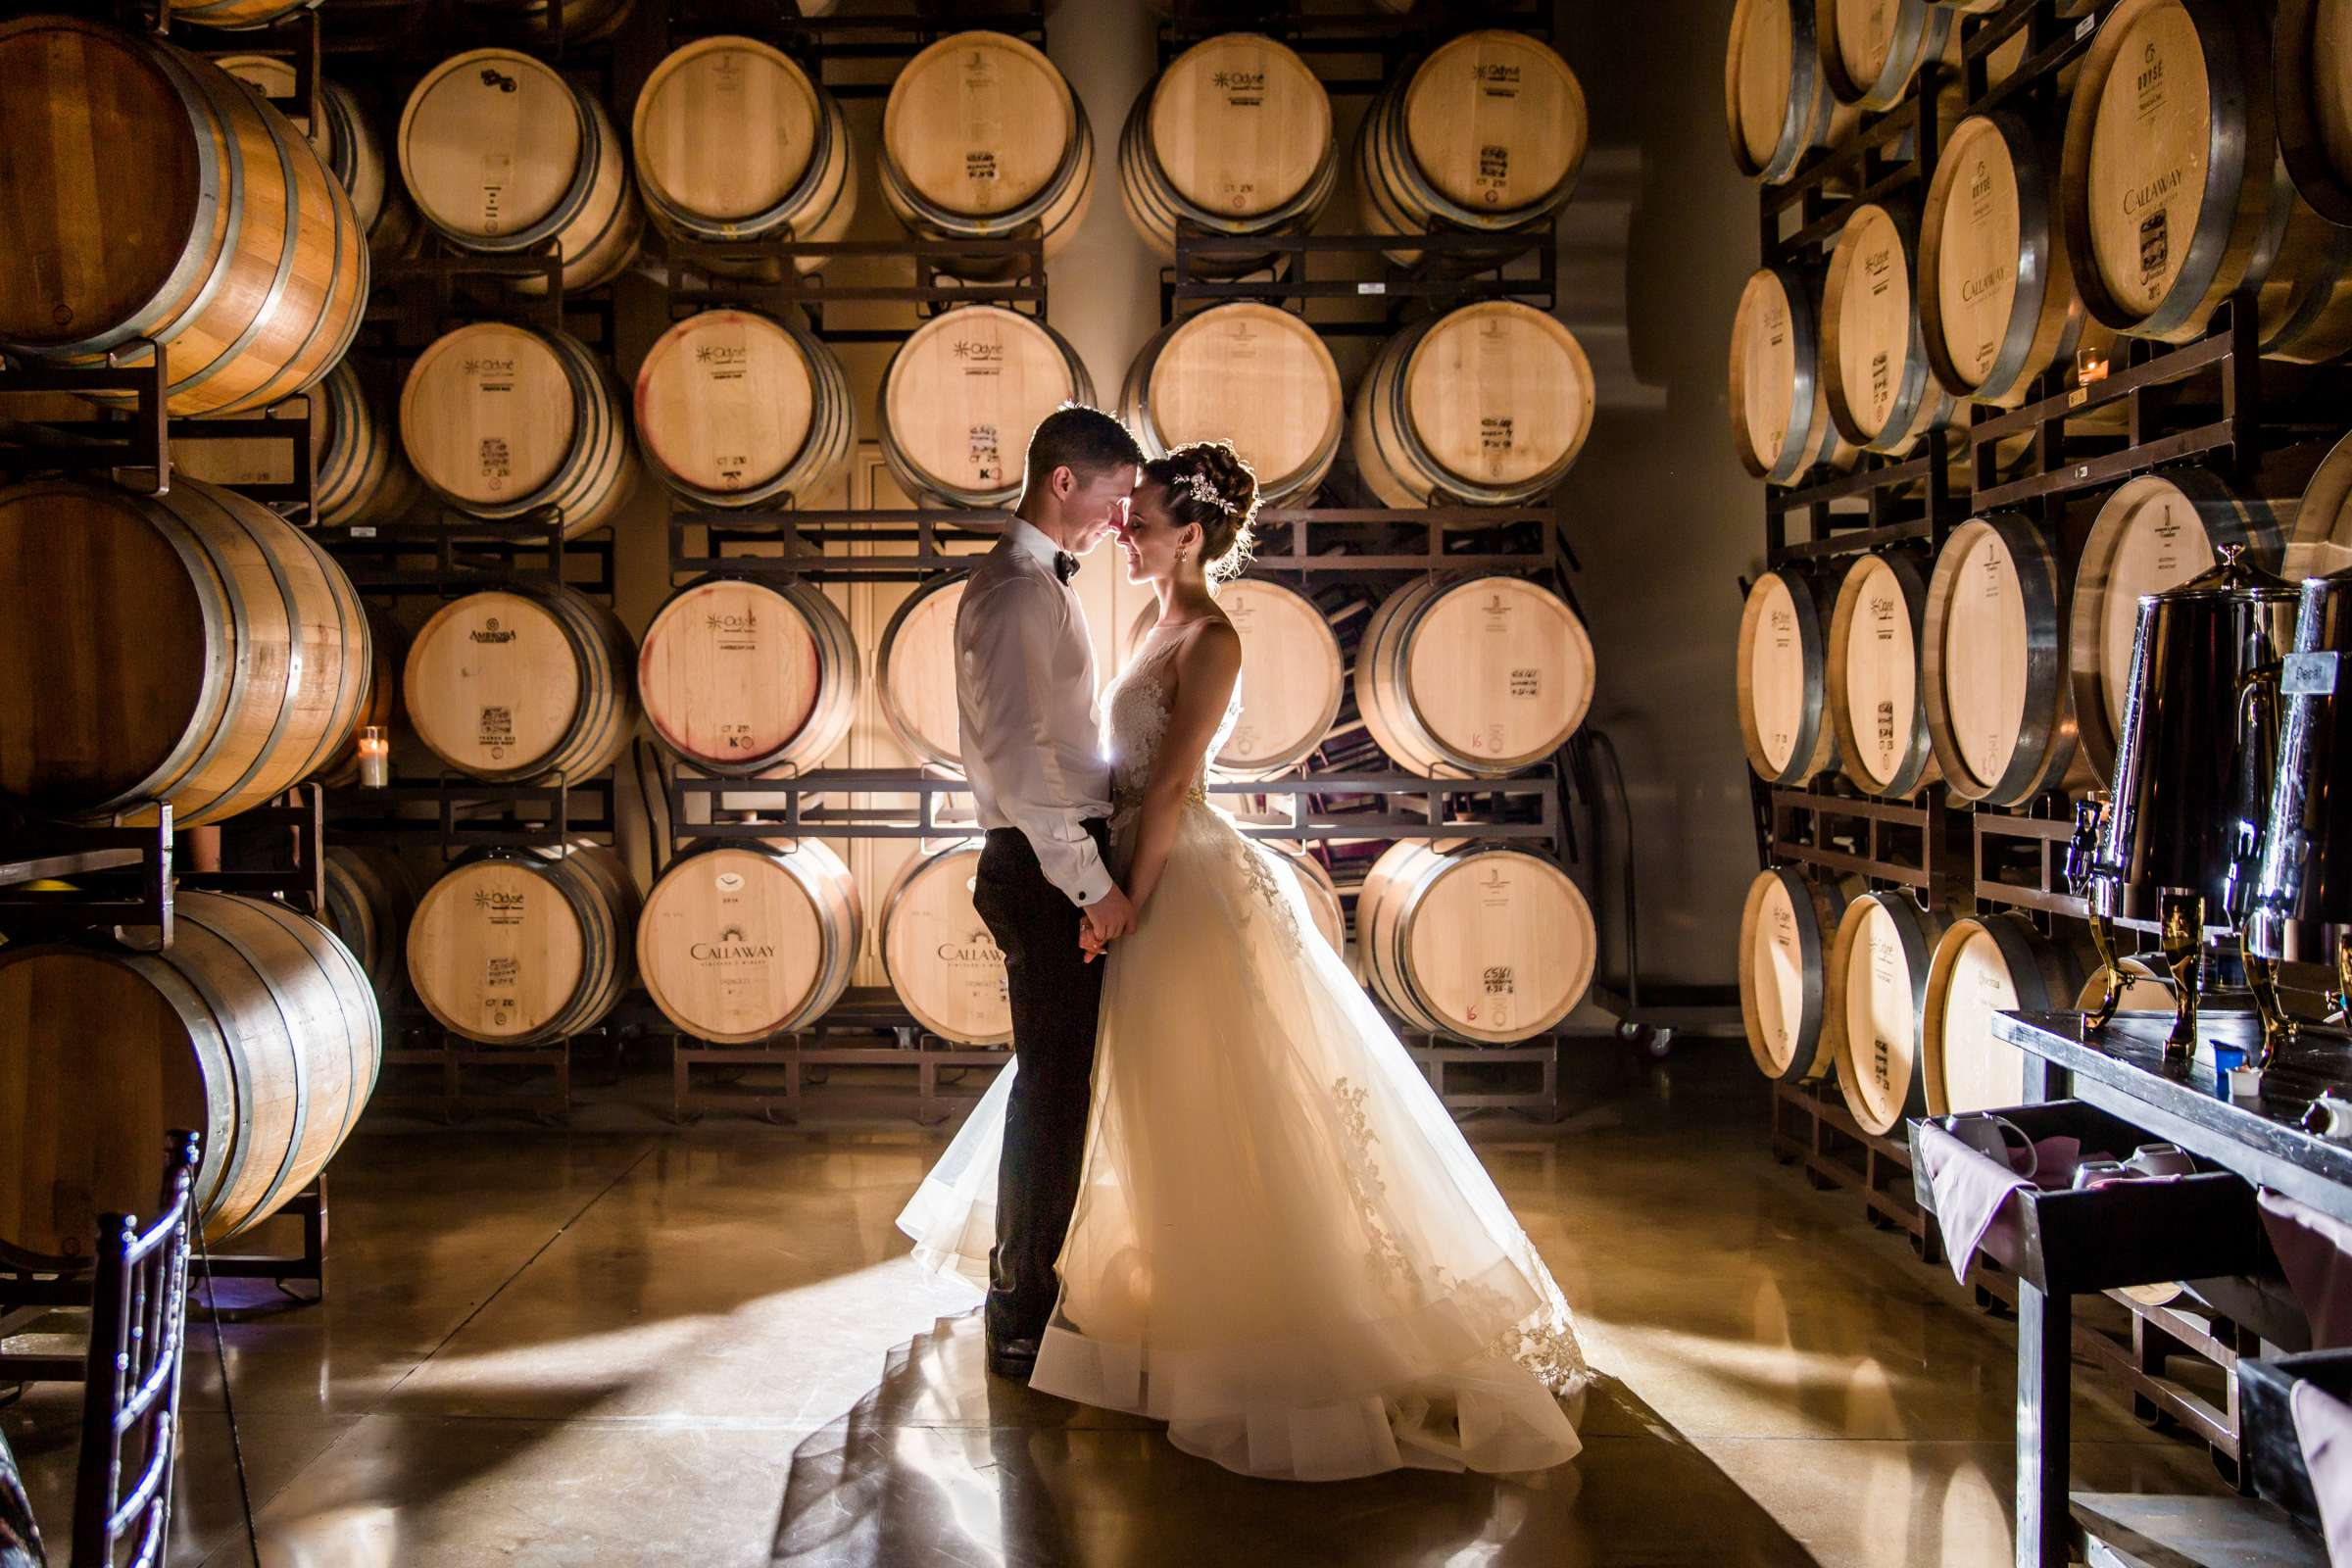 Winery at Callaway Vineyards & Winery Wedding, Natalia and Mike Wedding Photo #1 by True Photography